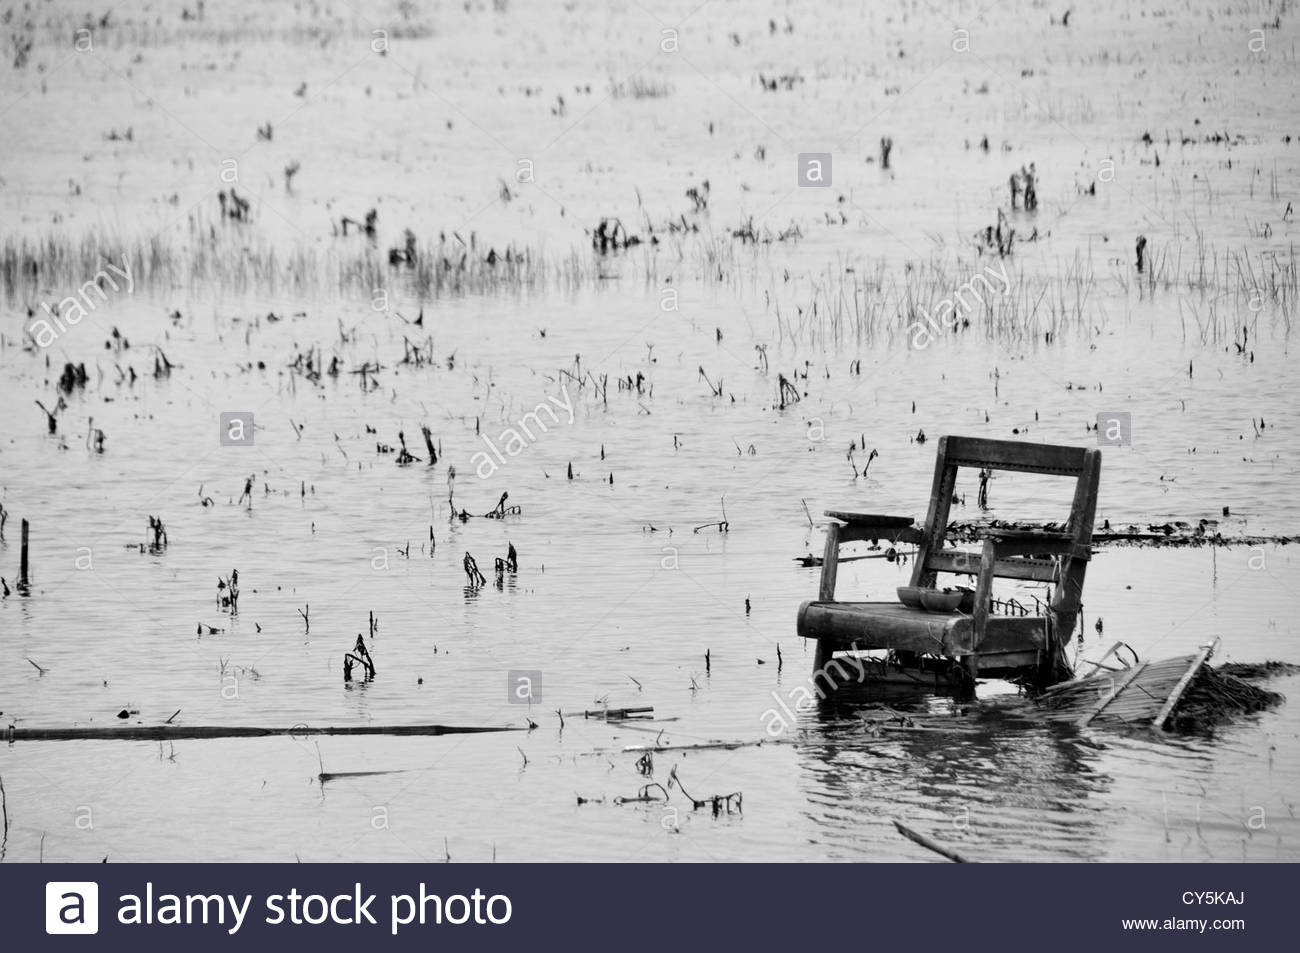 A chair is seen in a flooded rural area caused by cyclone Nargis near Yangon in the Republic of the Union of Myanmar - Stock Image